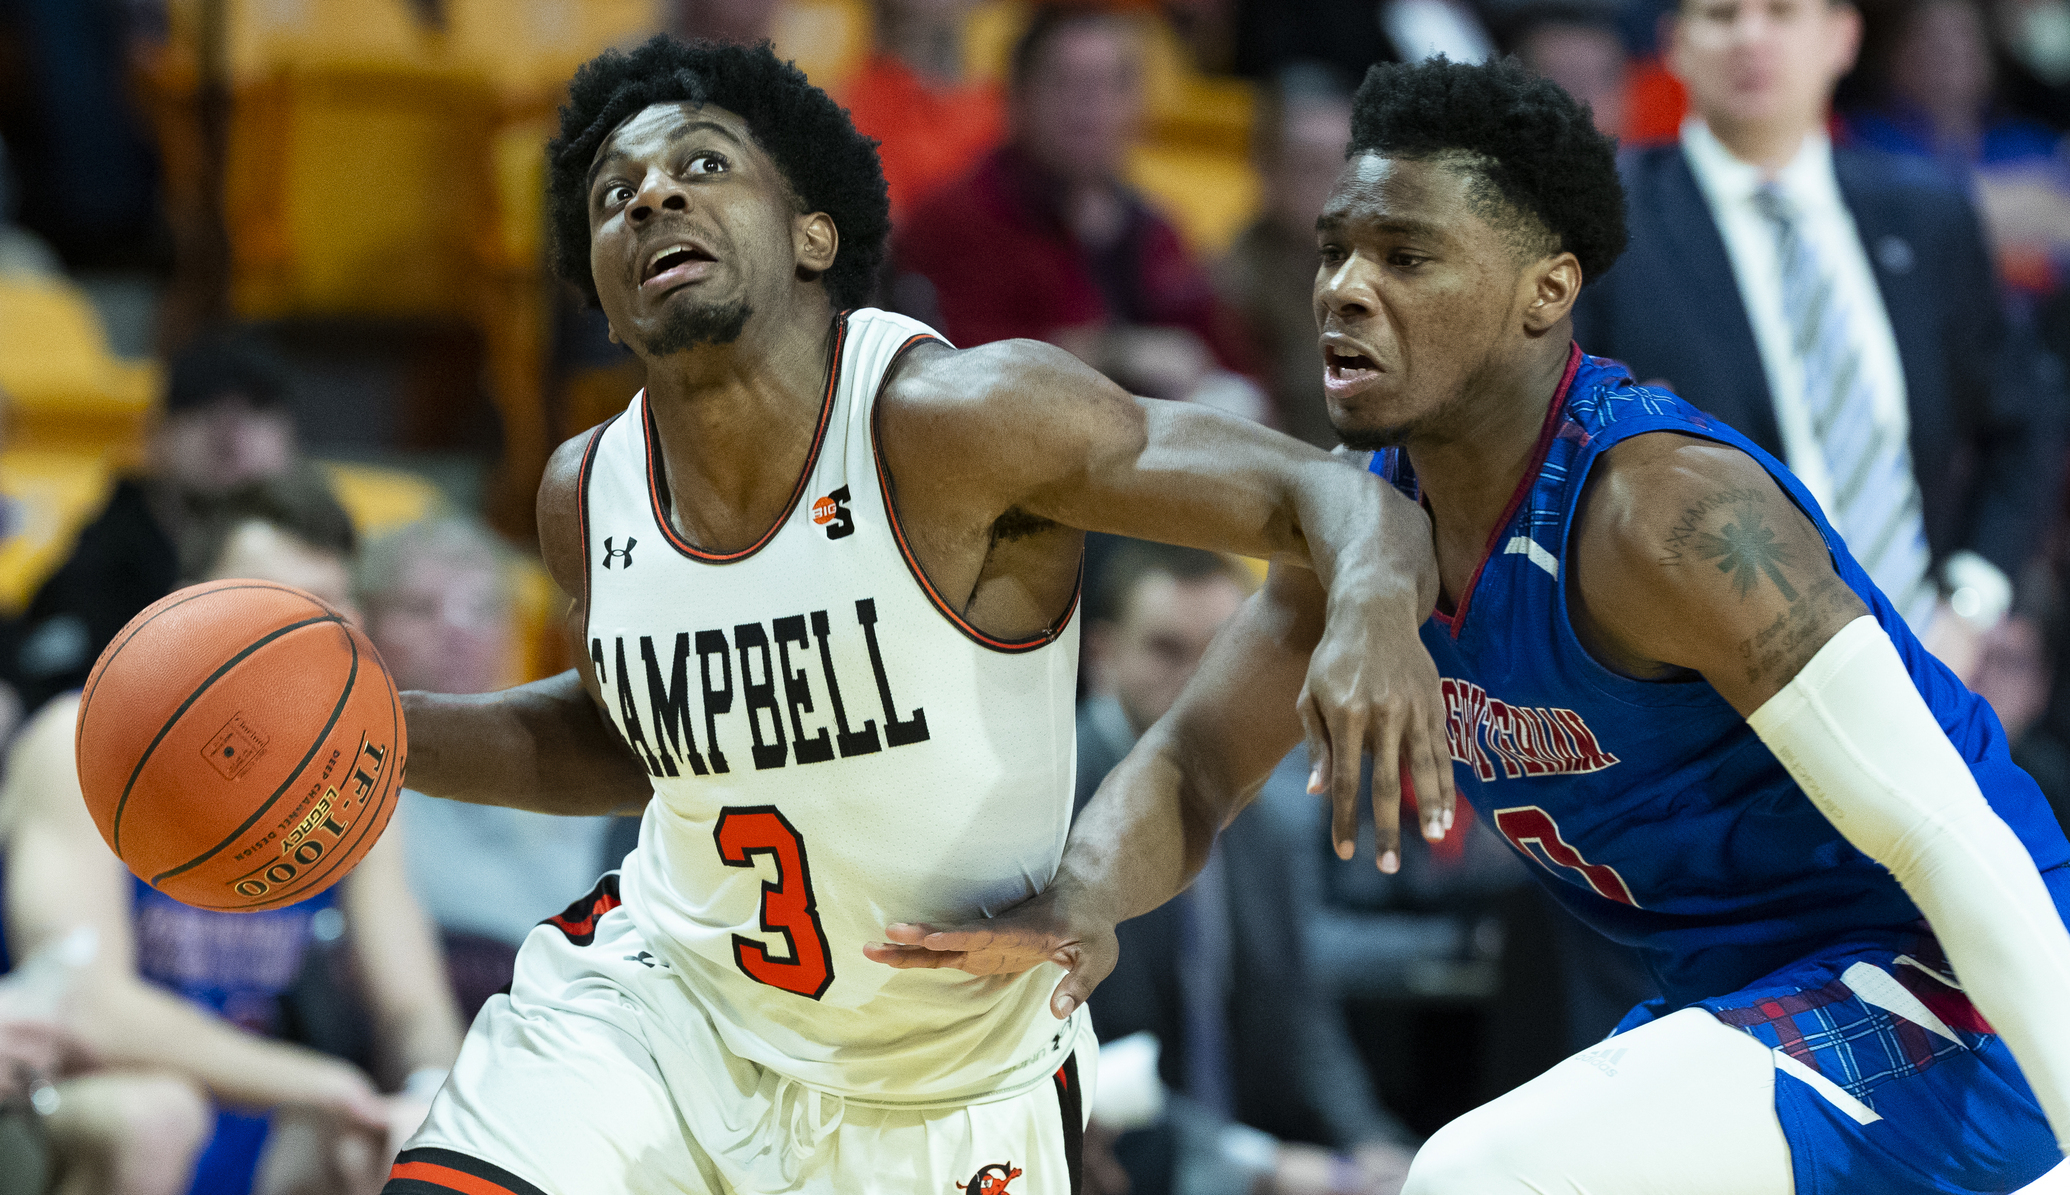 Campbell's Clemons dazzles among game's small (big) scorers